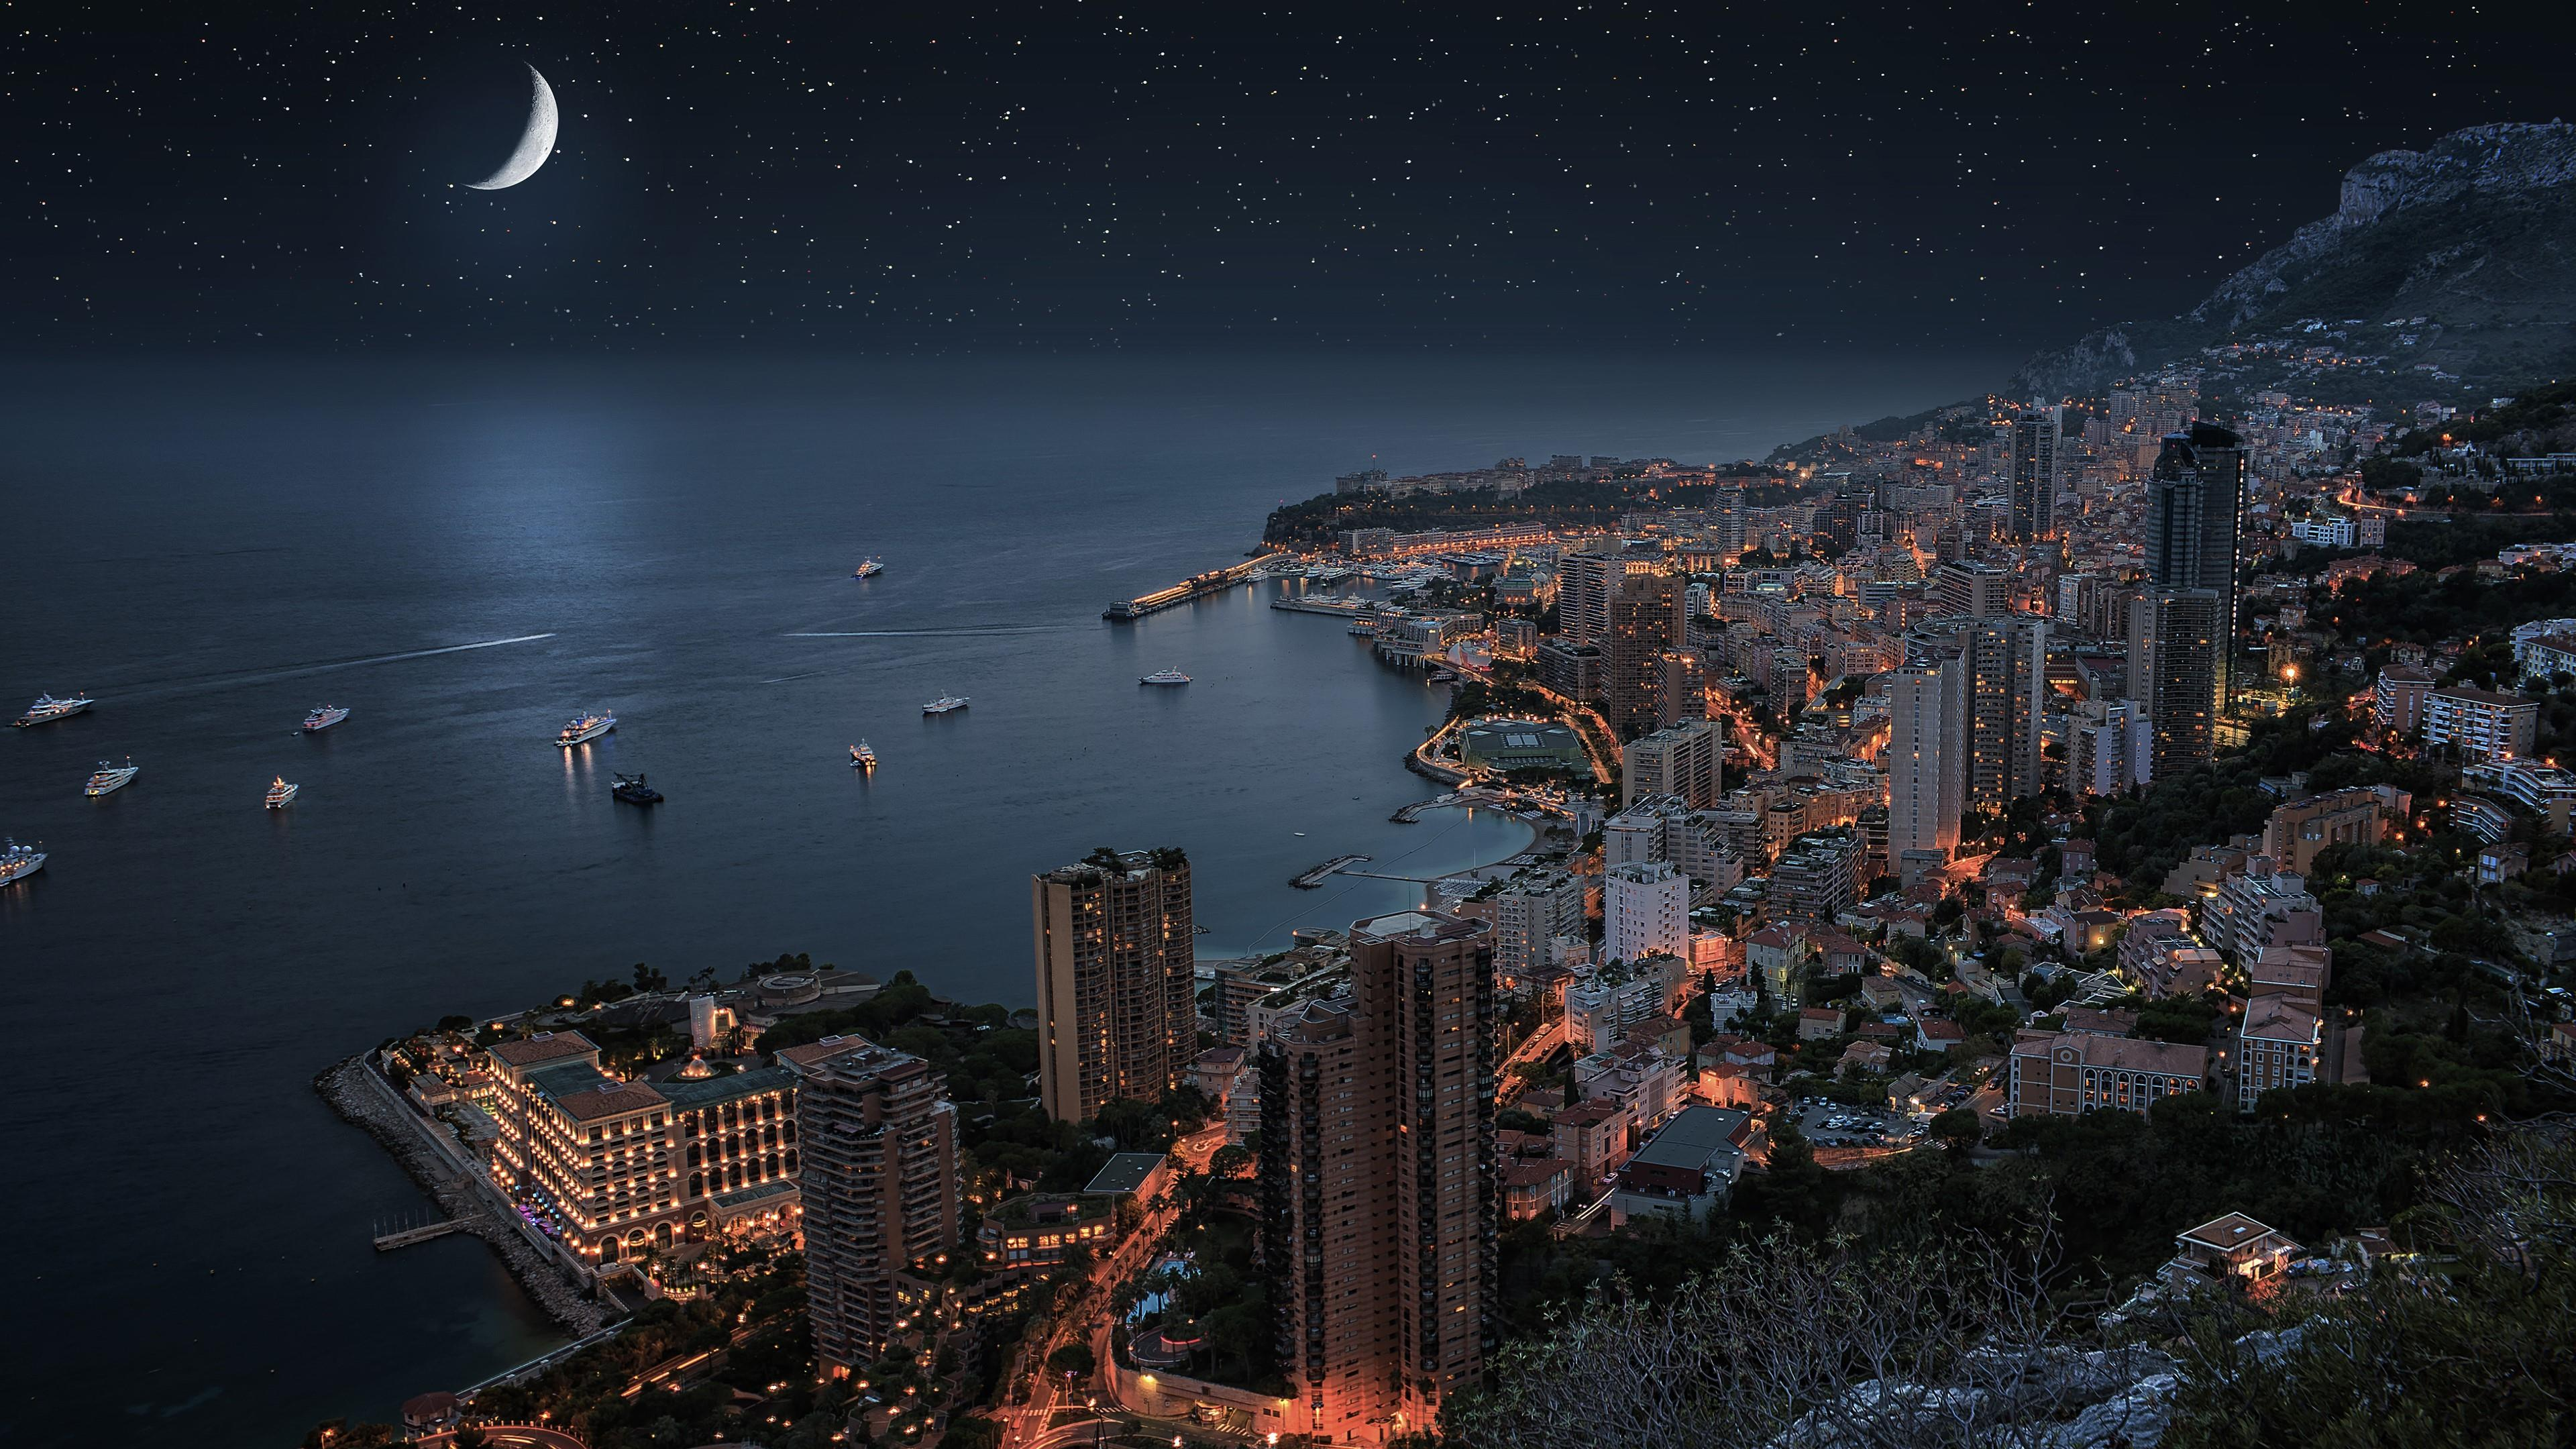 Monte-Carlo under the moonlight (Monaco) wallpaper